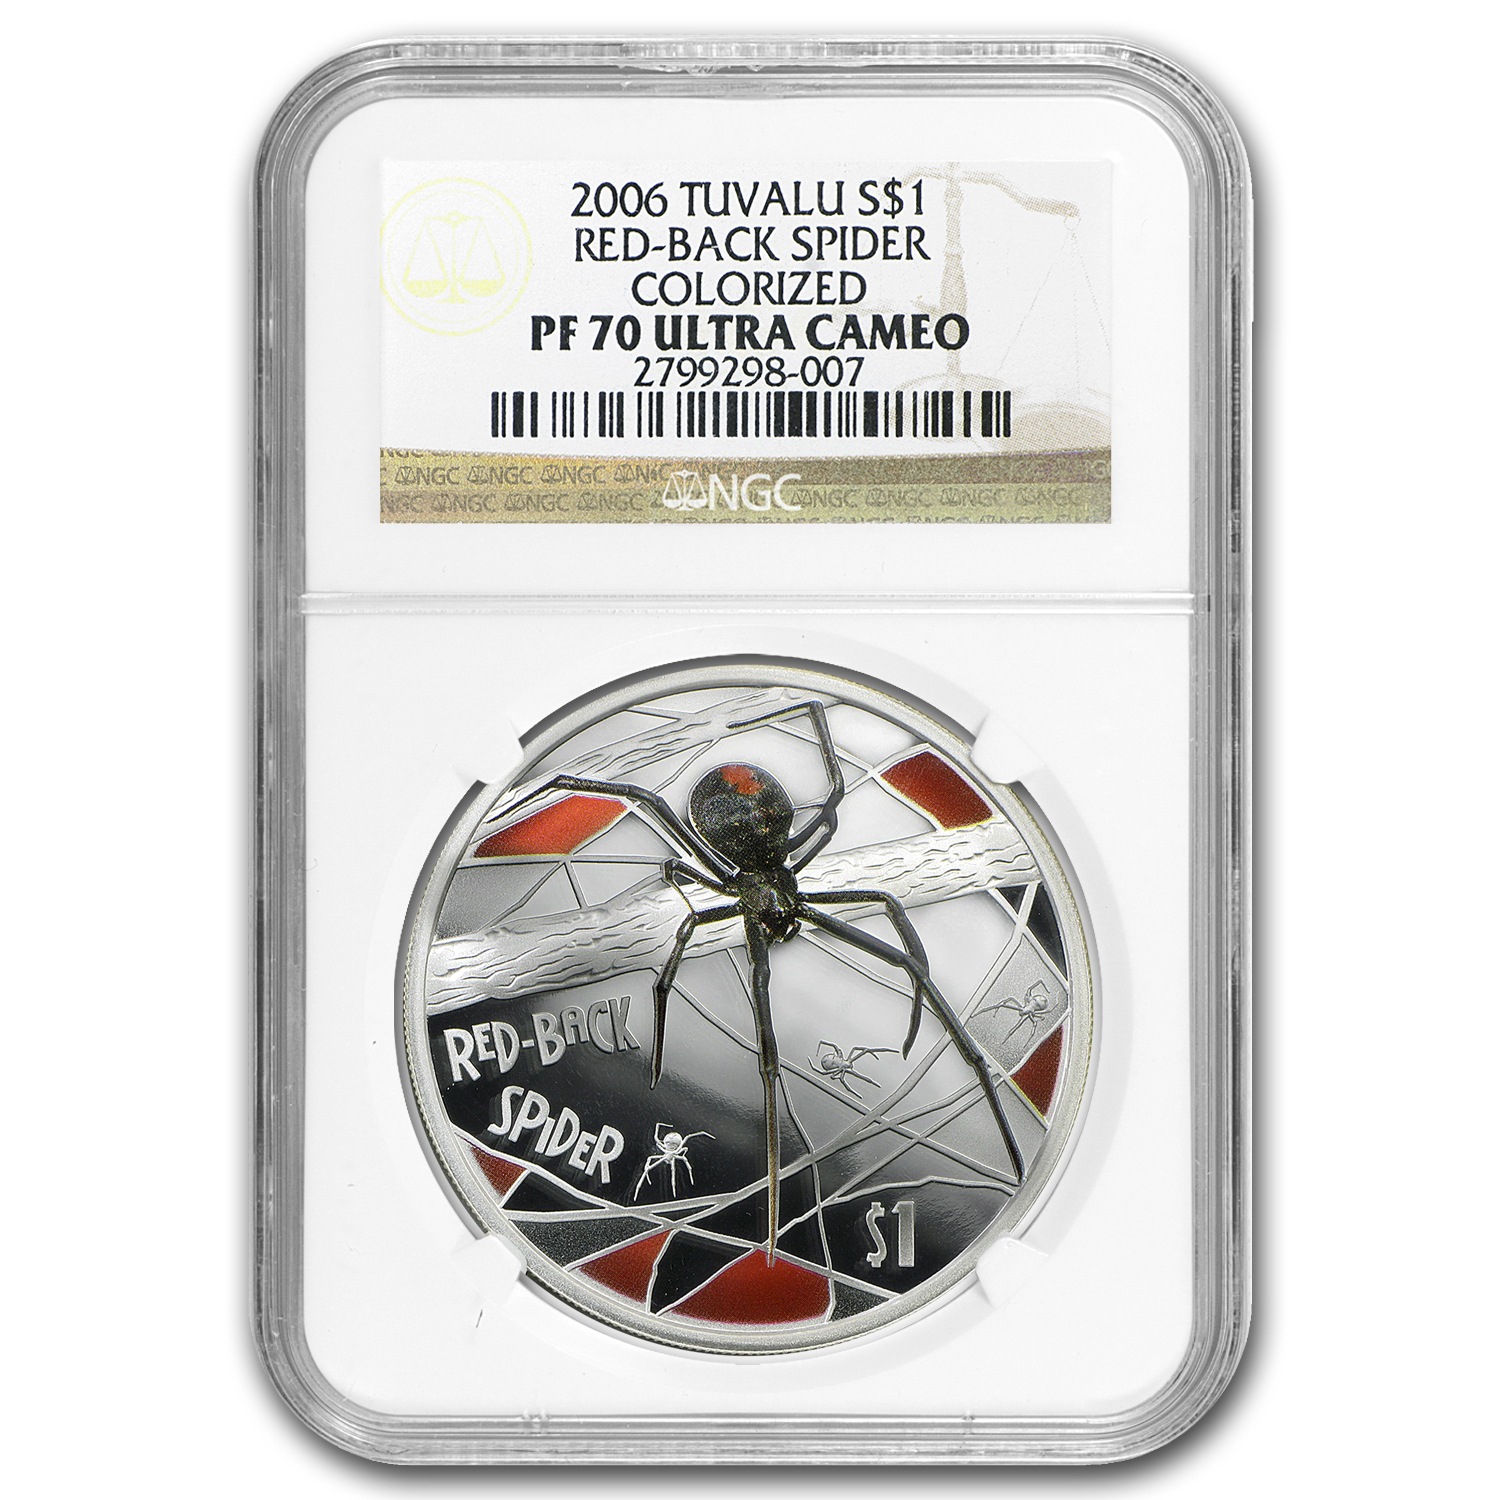 2006 Tuvalu 1 oz Silver Red-Back Spider PF-70 NGC